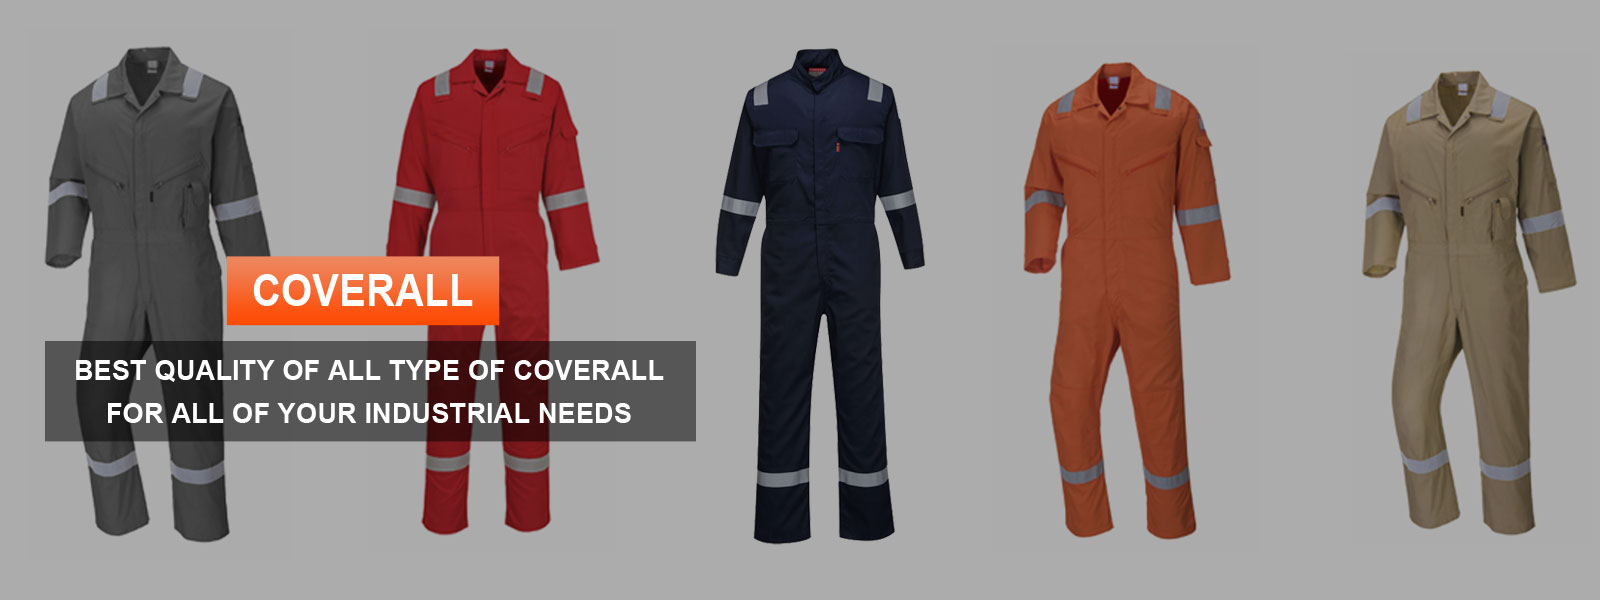 Coverall Manufacturers in Sweden